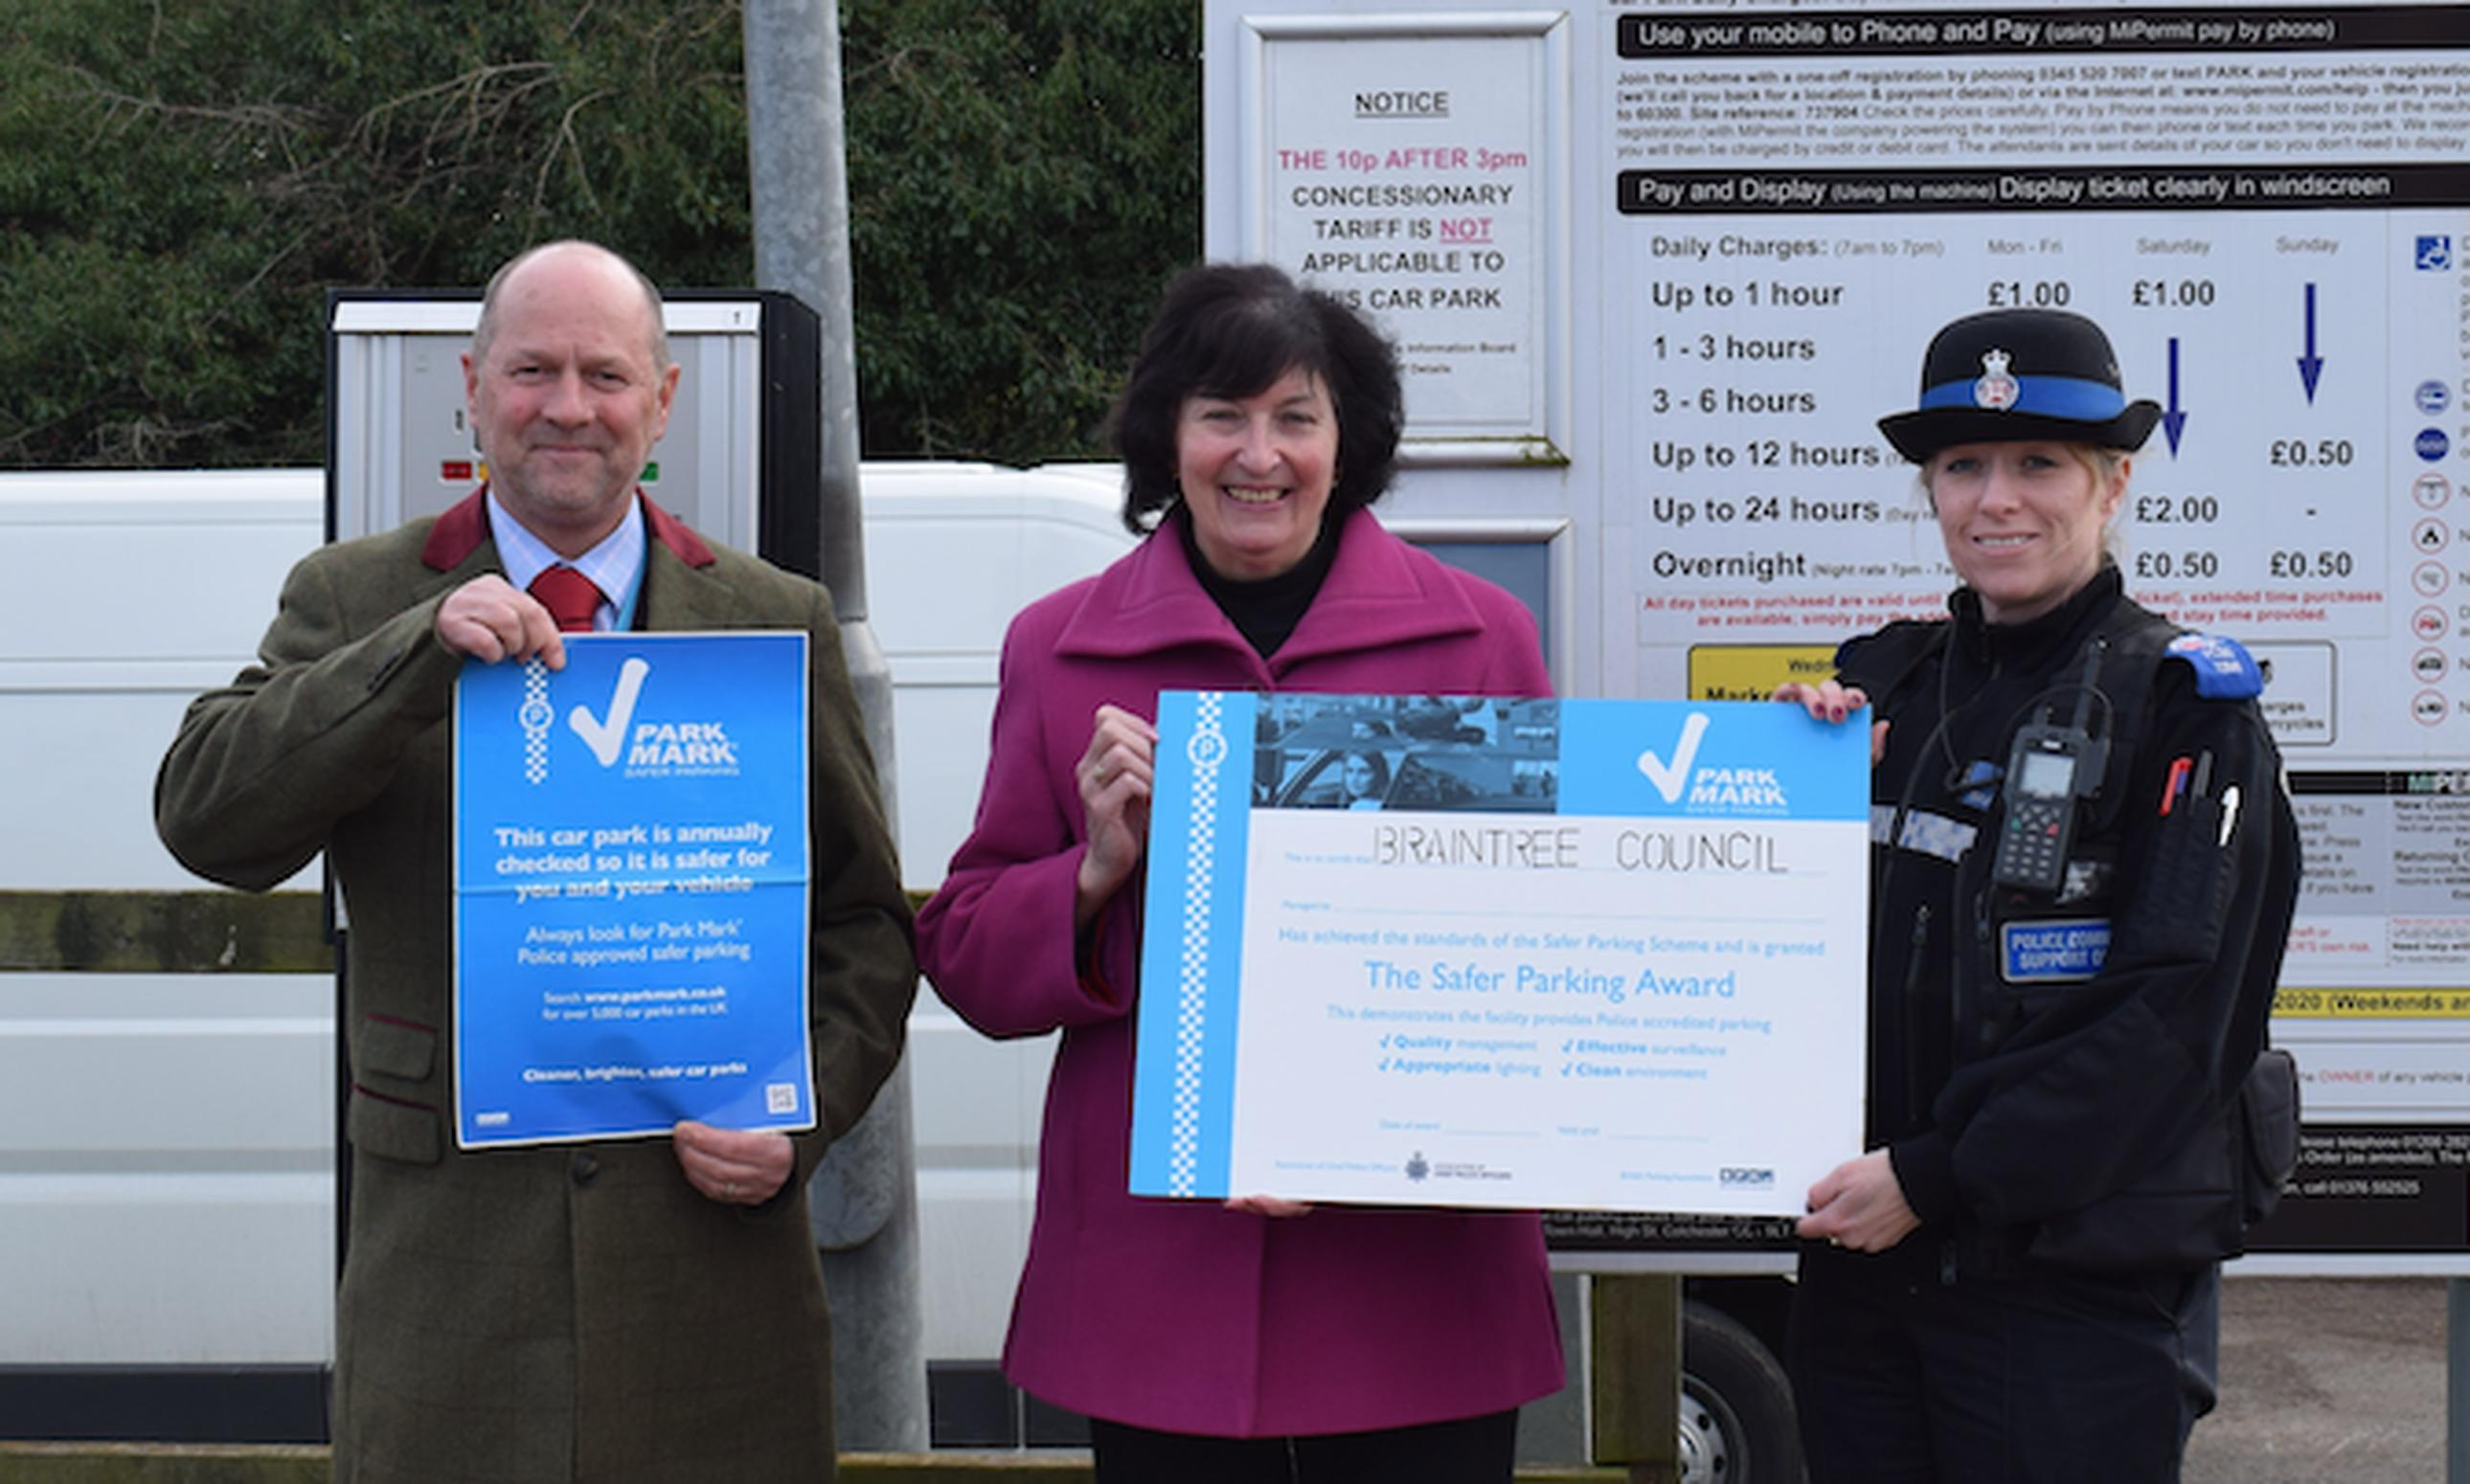 Braintree receives Park Mark awards for all its car parks